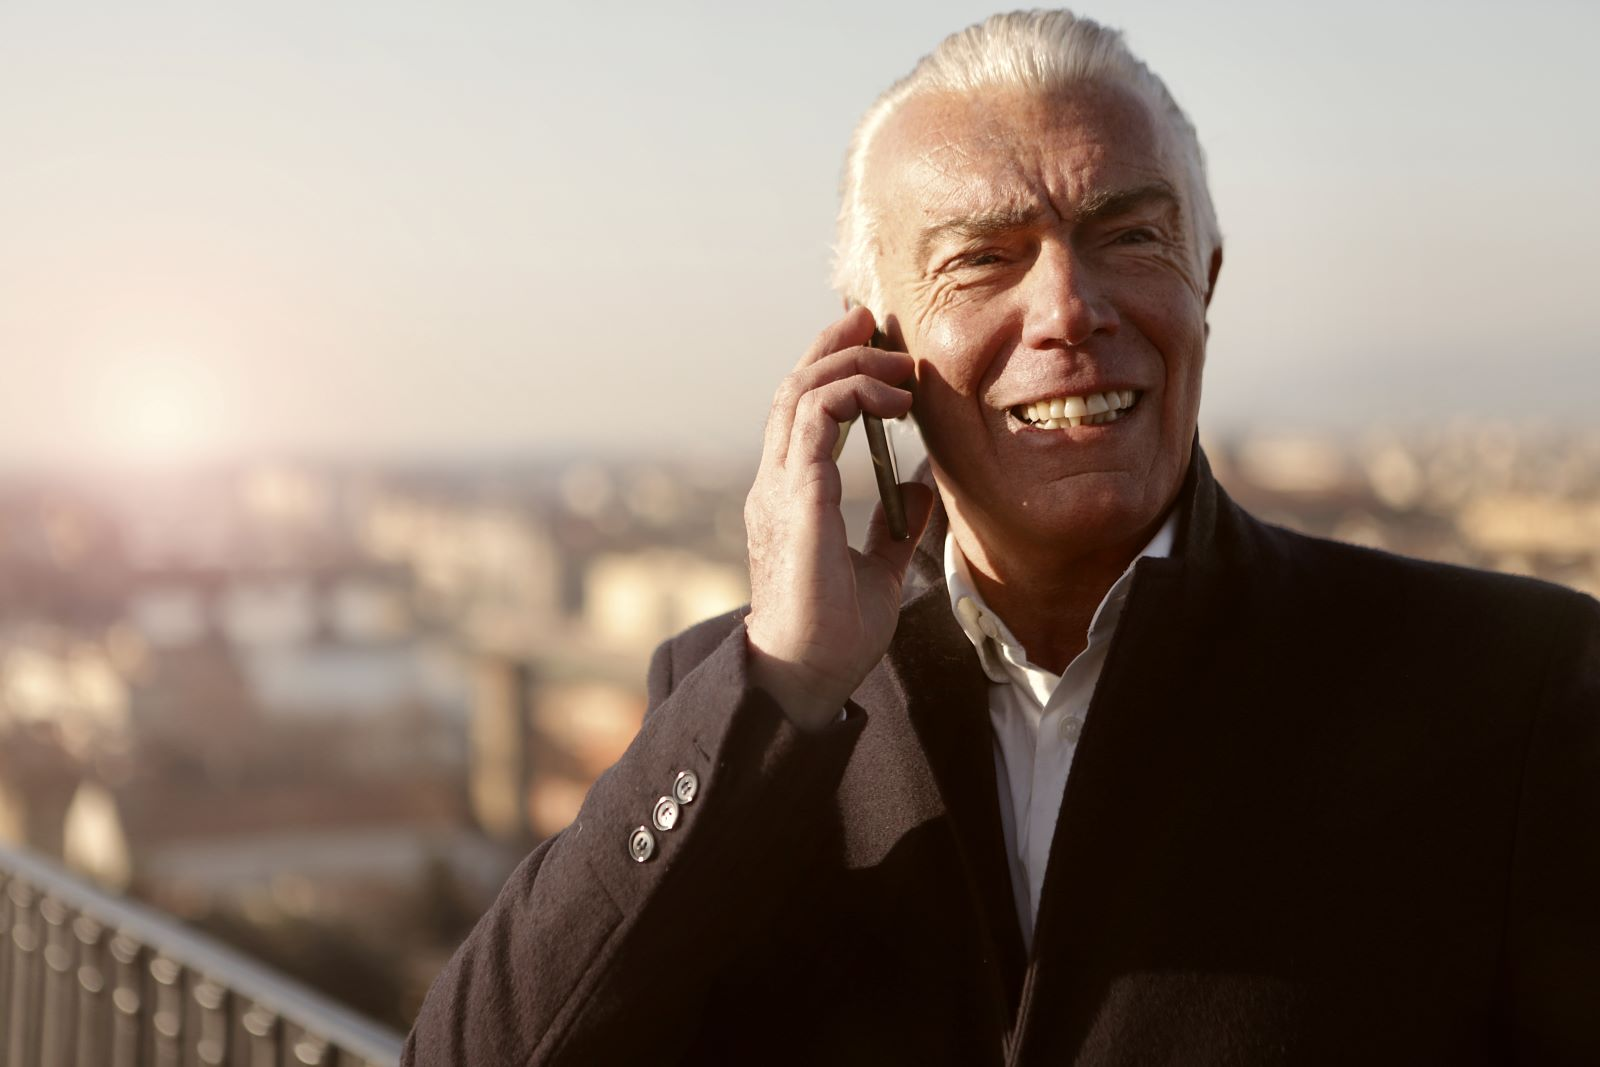 Cell Phone Plan Discounts for Seniors - Senior man in black jacket standing outside talking on cell phone with a blurred-out background of a city